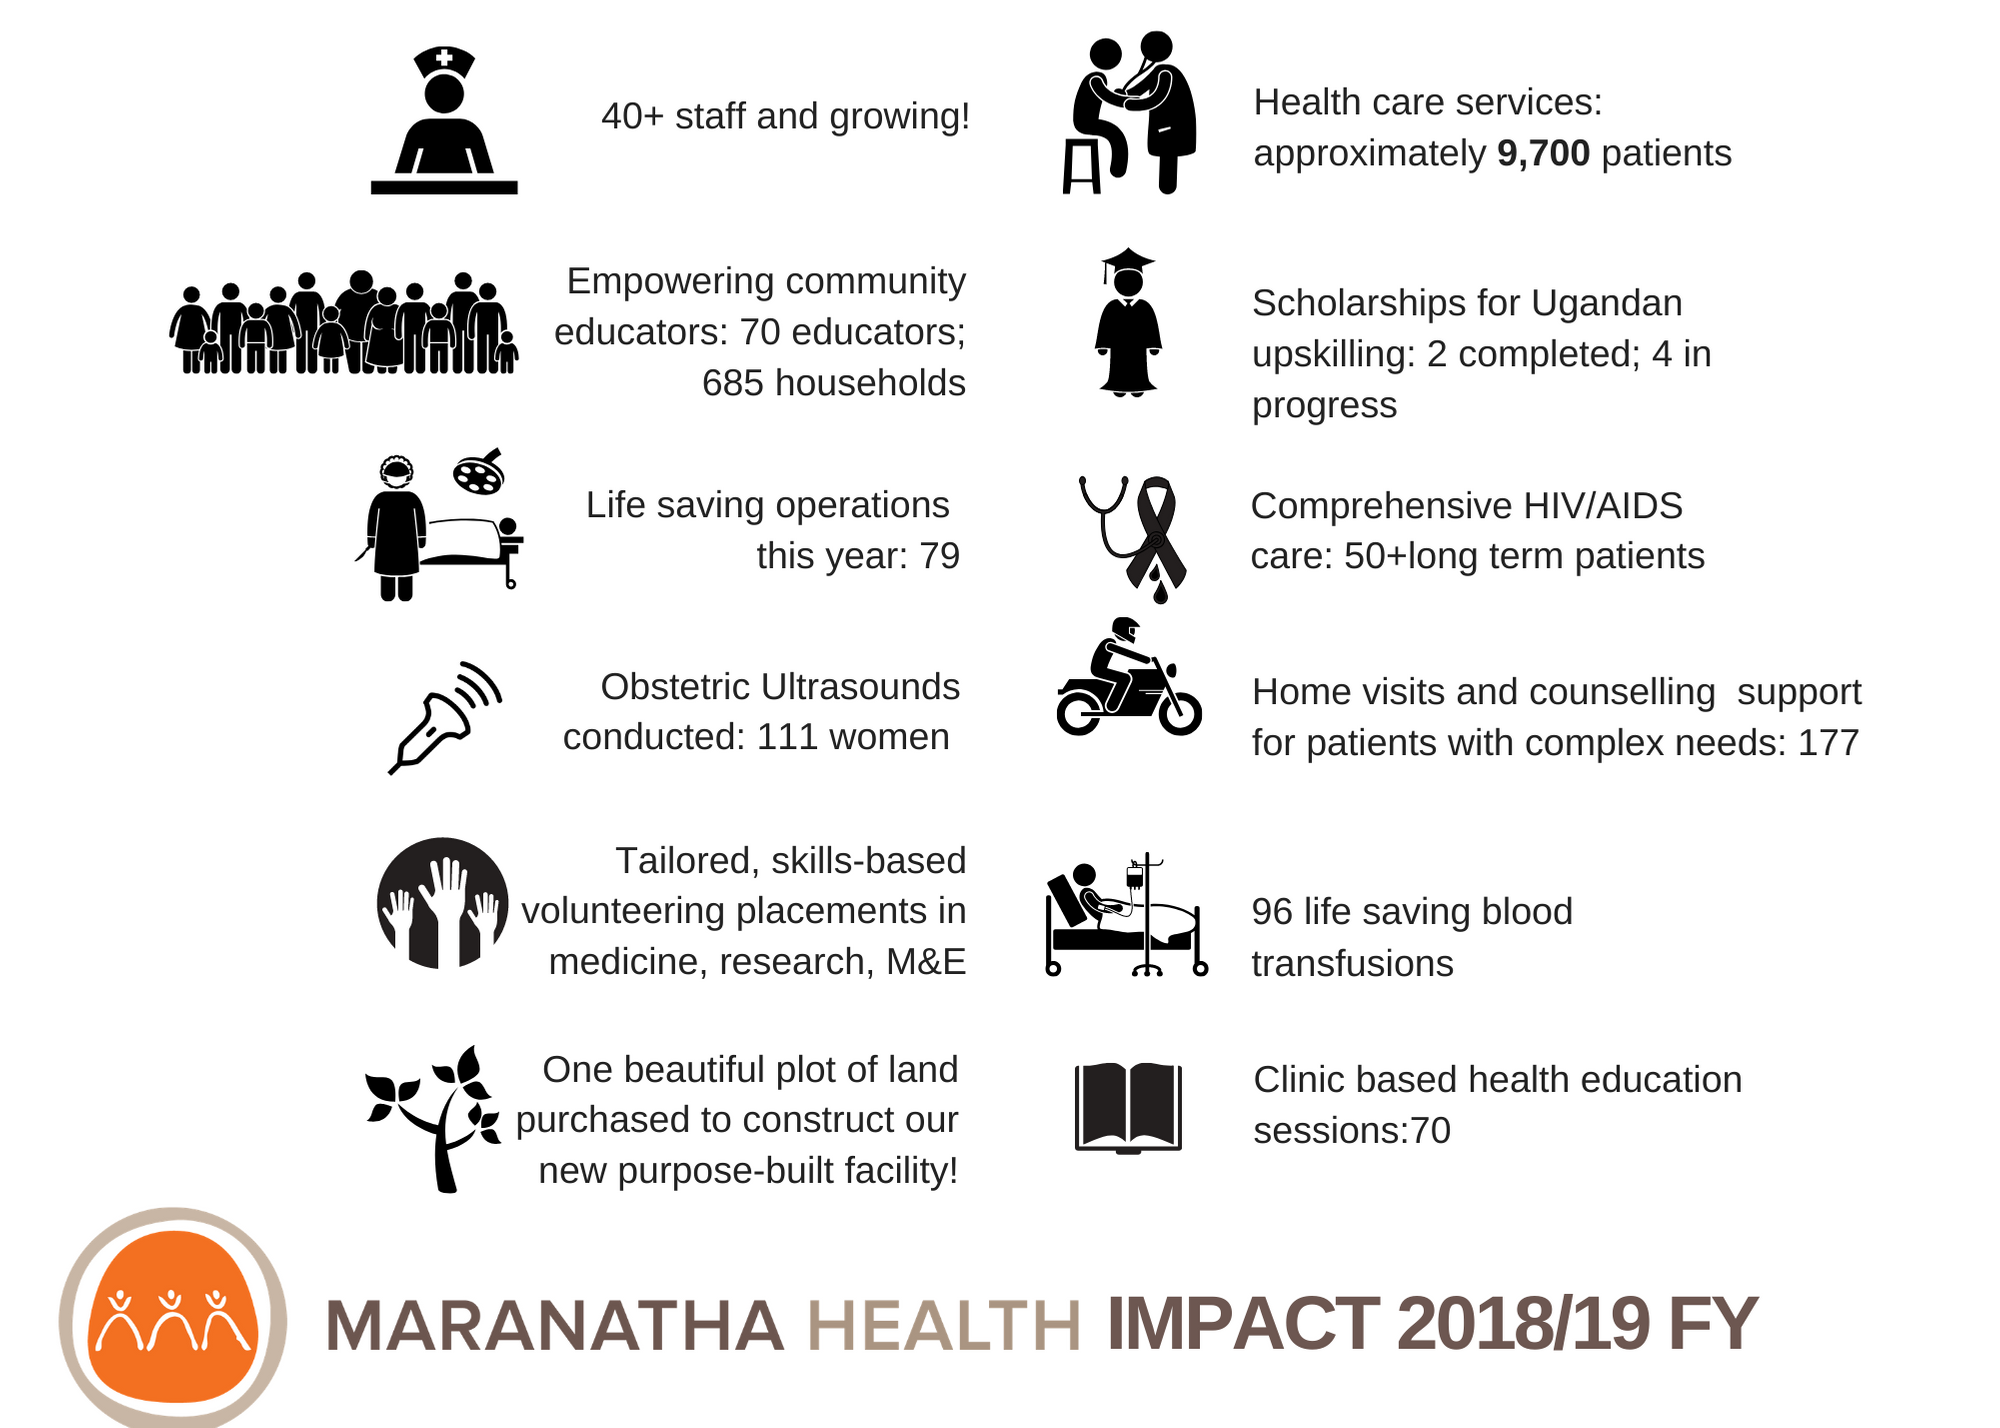 Maranatha Heath Impact 2018/19 info graphic